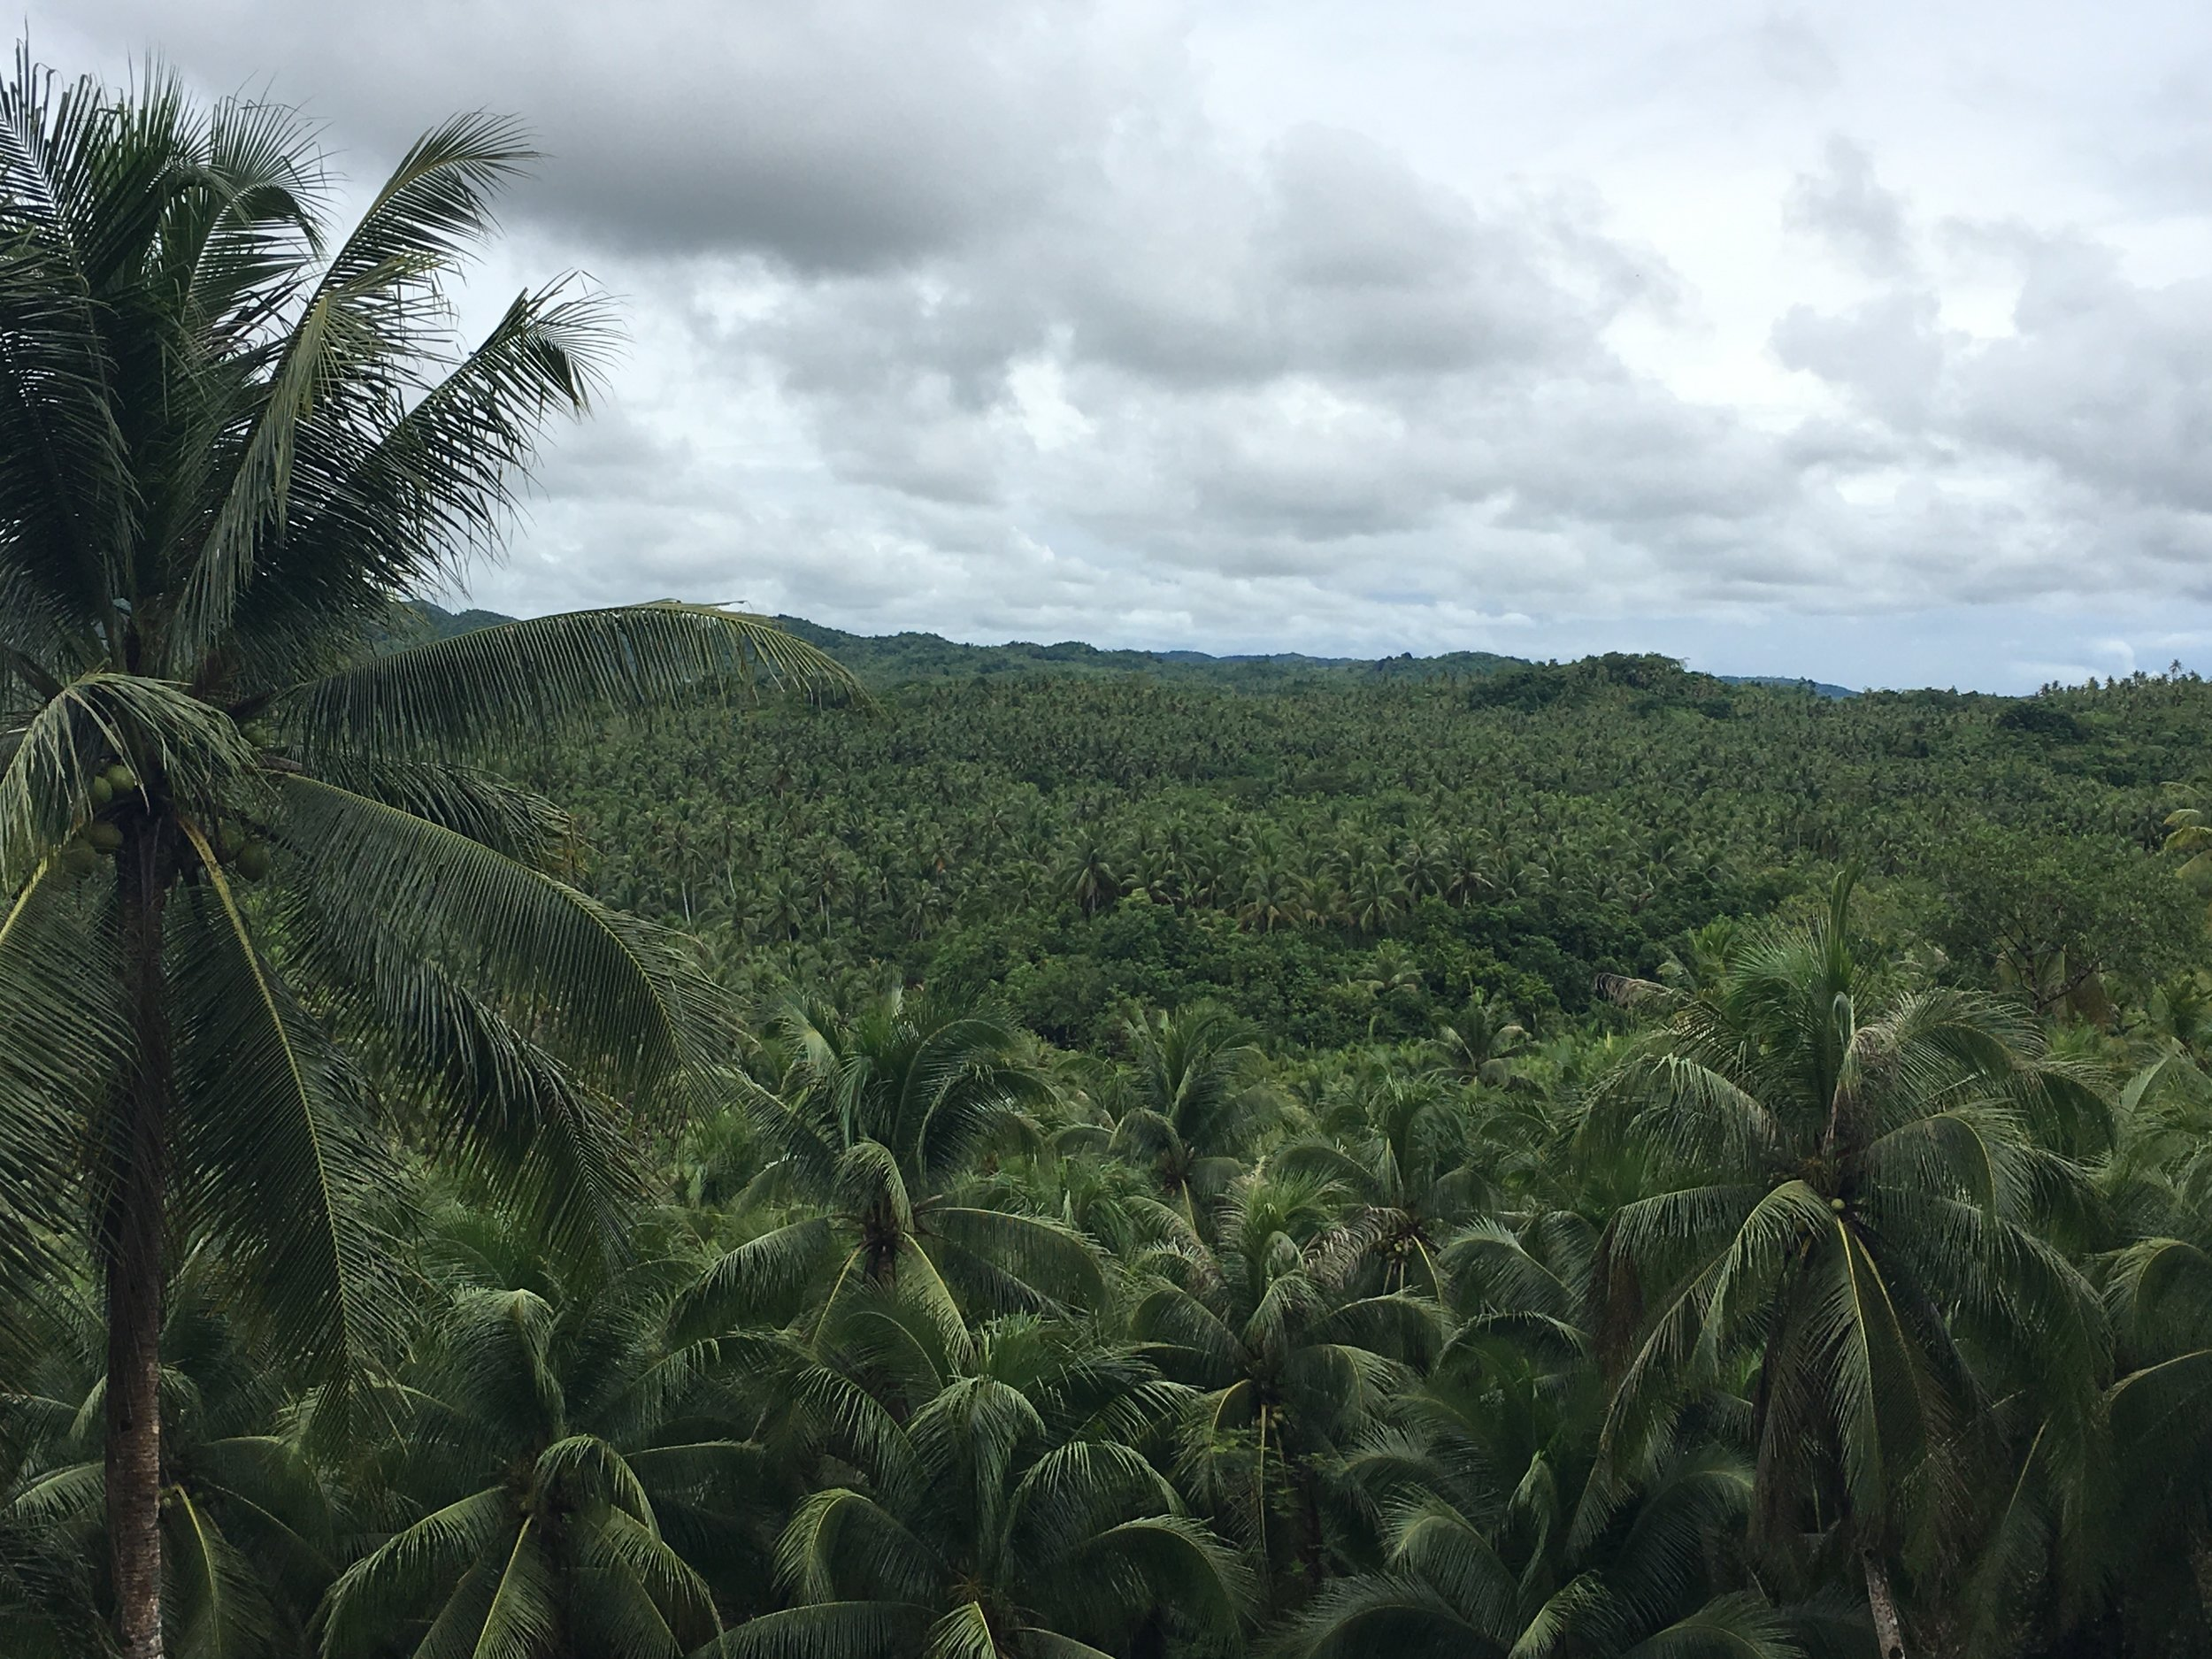 Coconut trees as far as the eye can see on the way to Pilar